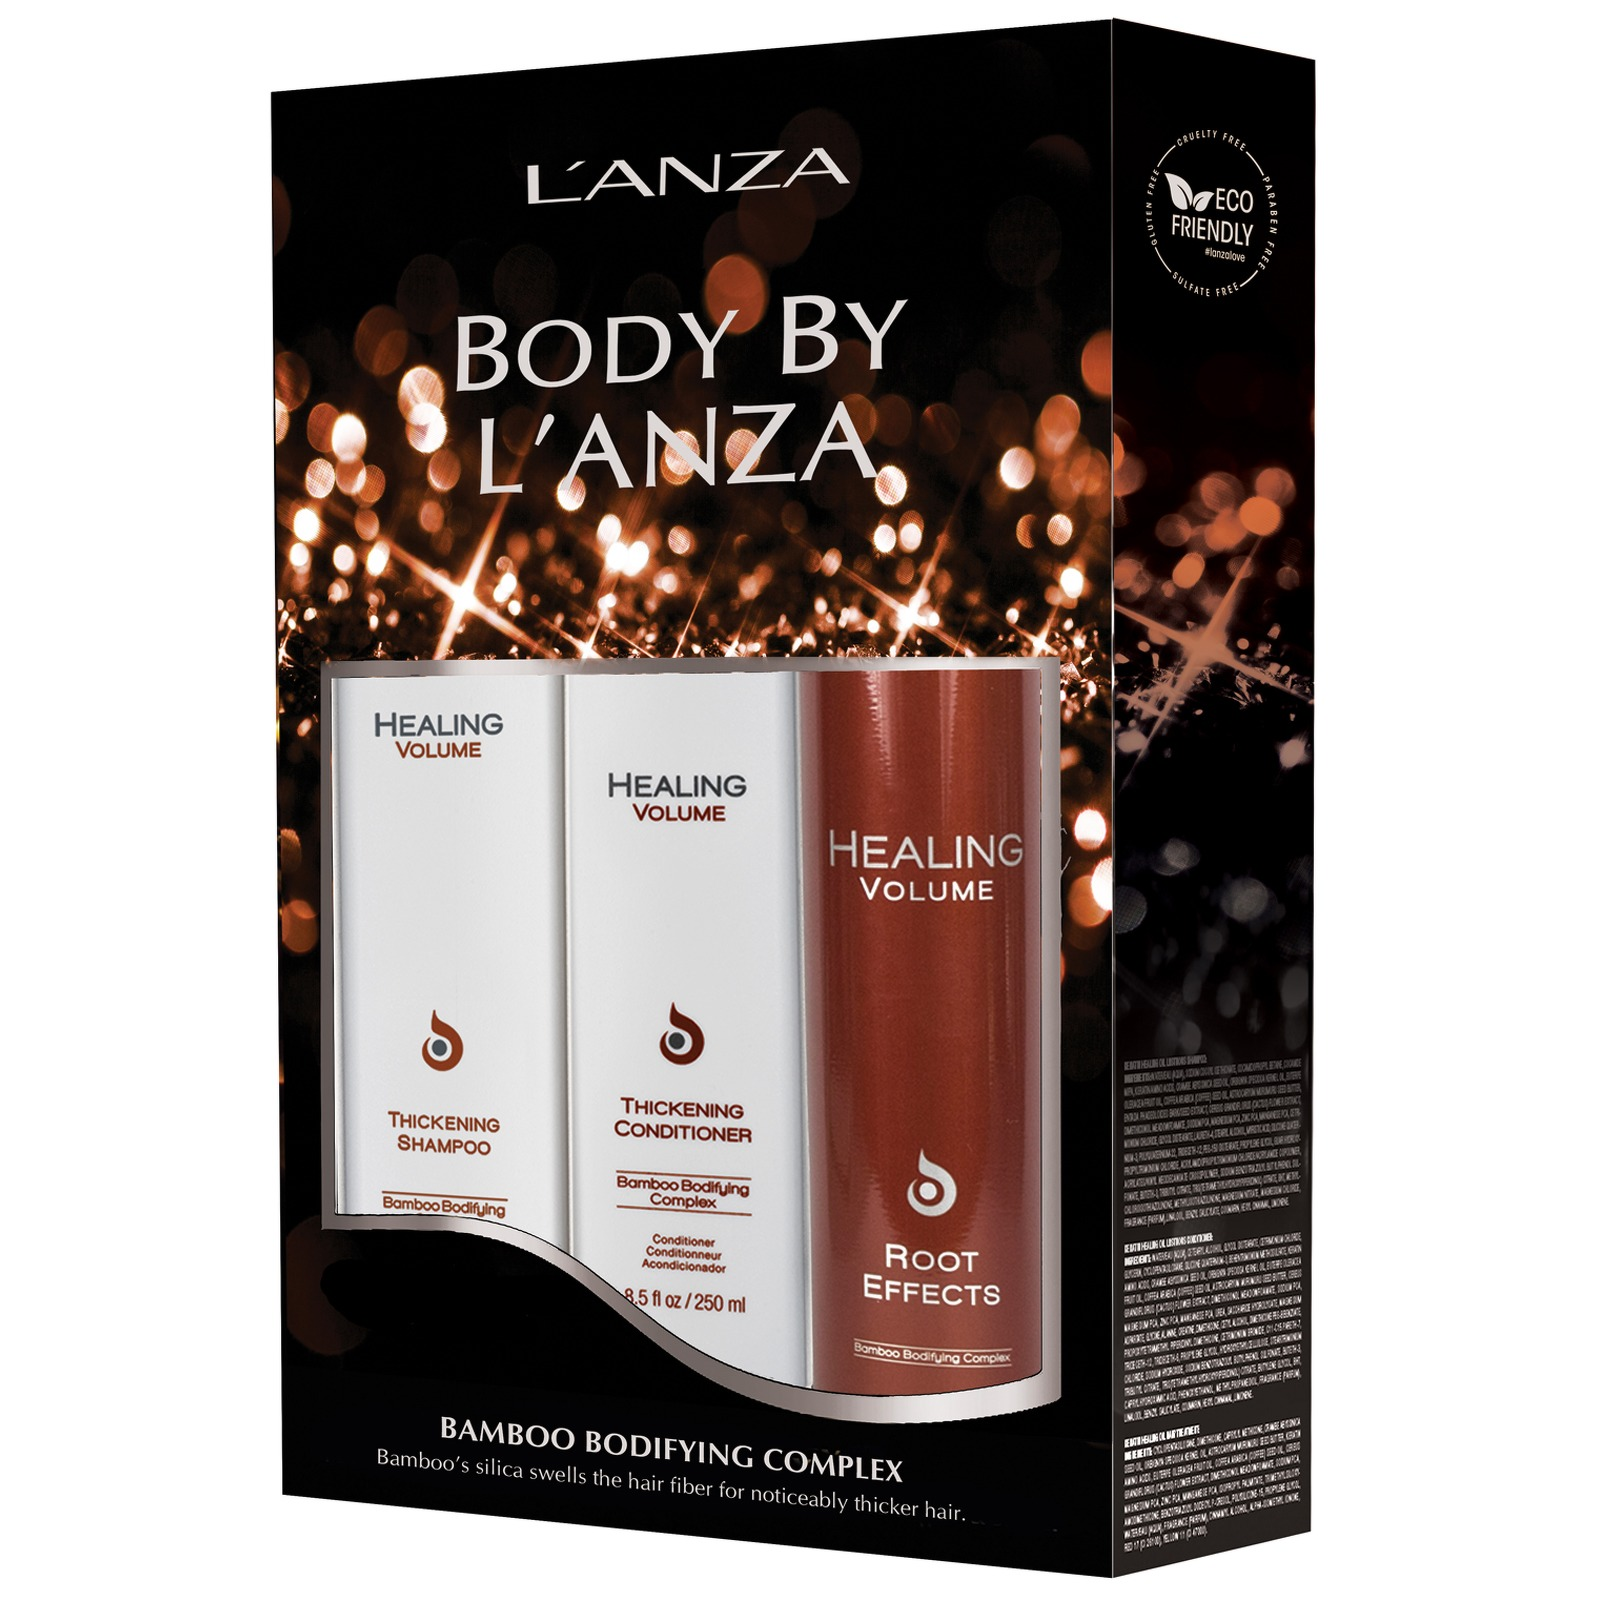 L'Anza Gifts & Sets Healing Volume Holiday Trio (Worth £70.00)